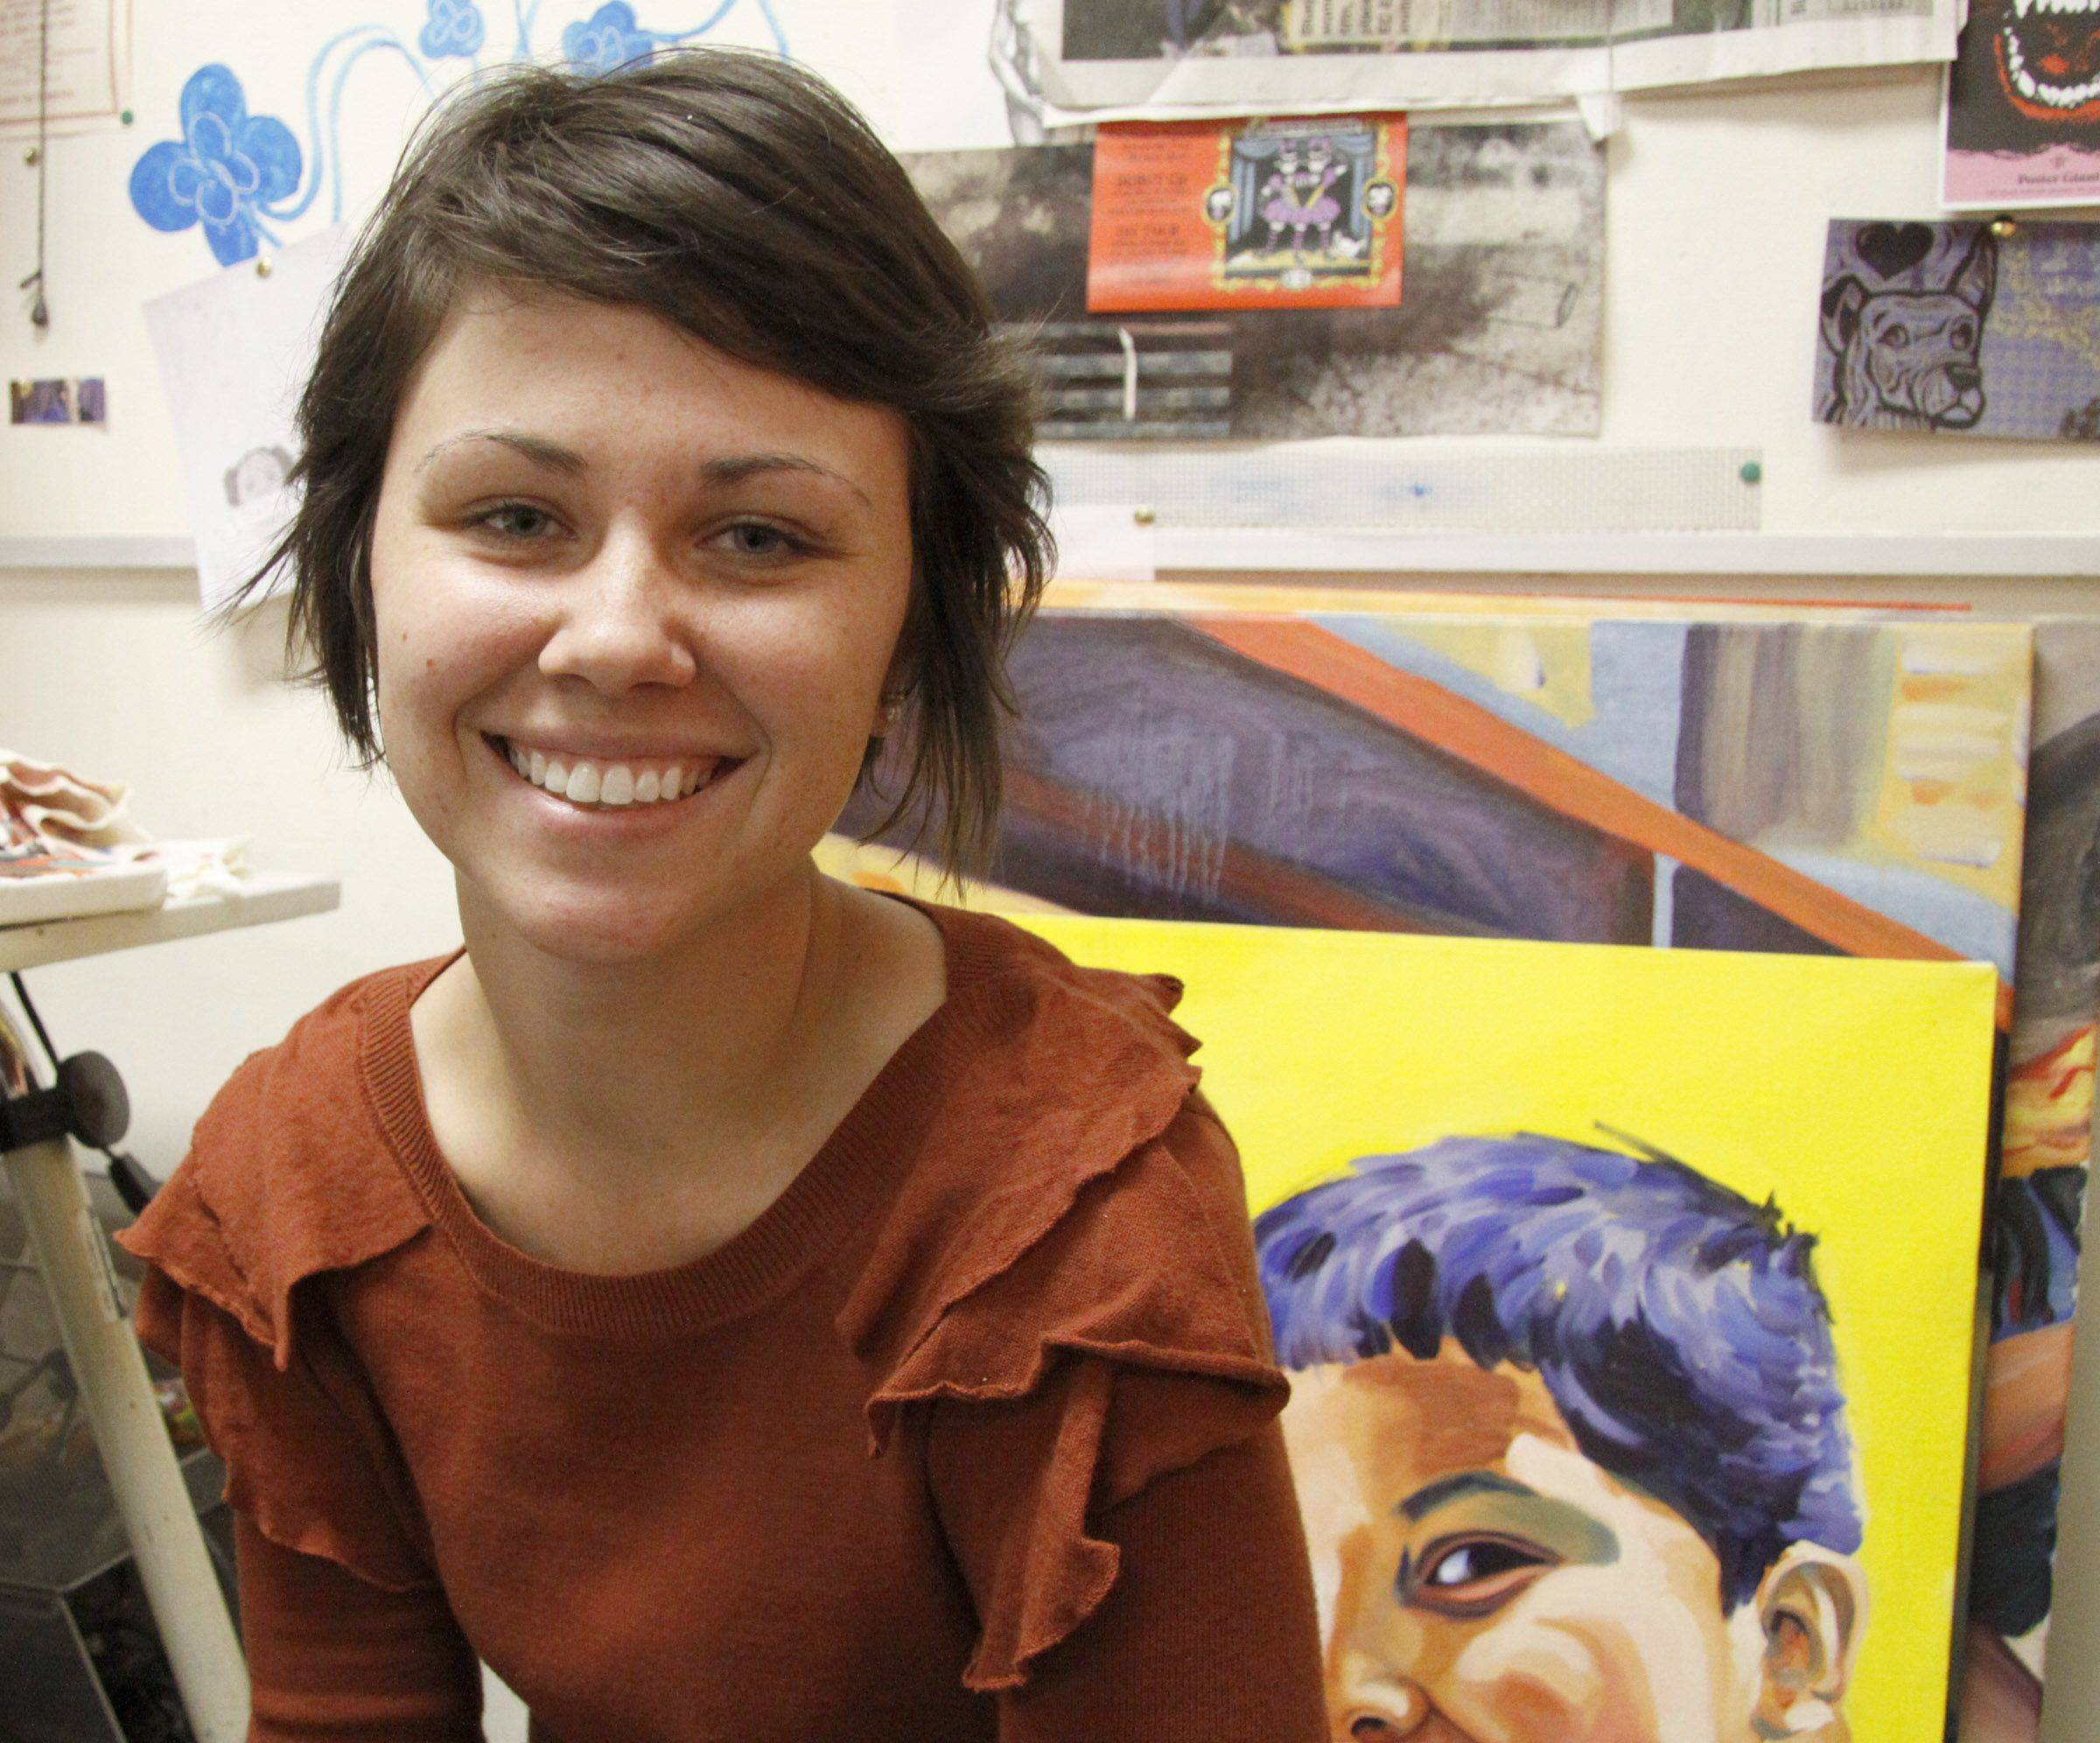 Danielle Dobie, A Student At Elmhurst College, Has Been Working For A Year  On